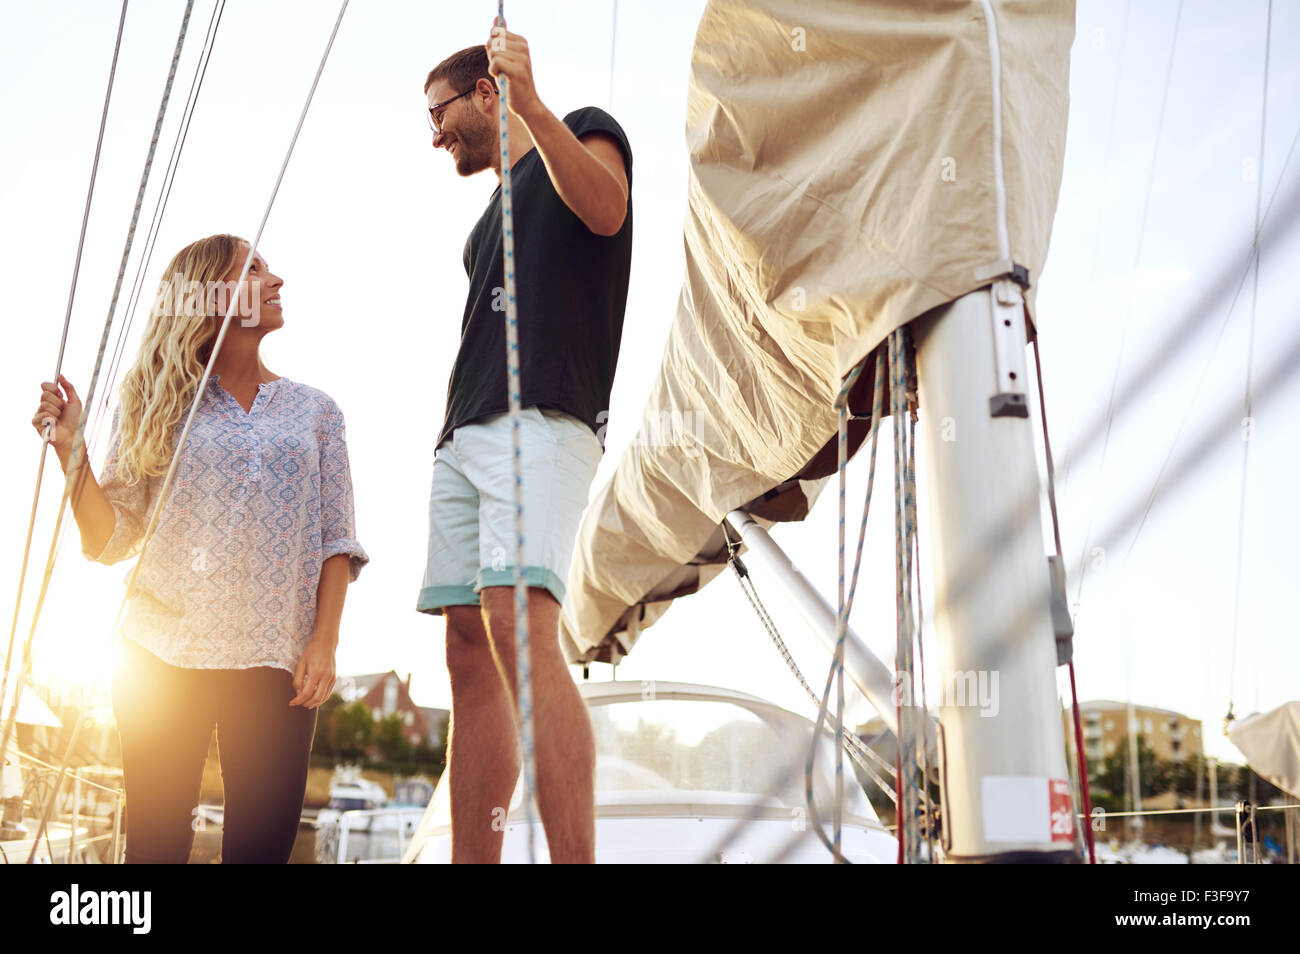 Couple Bought A Boat, Looking at each Other Satisfied - Stock Image